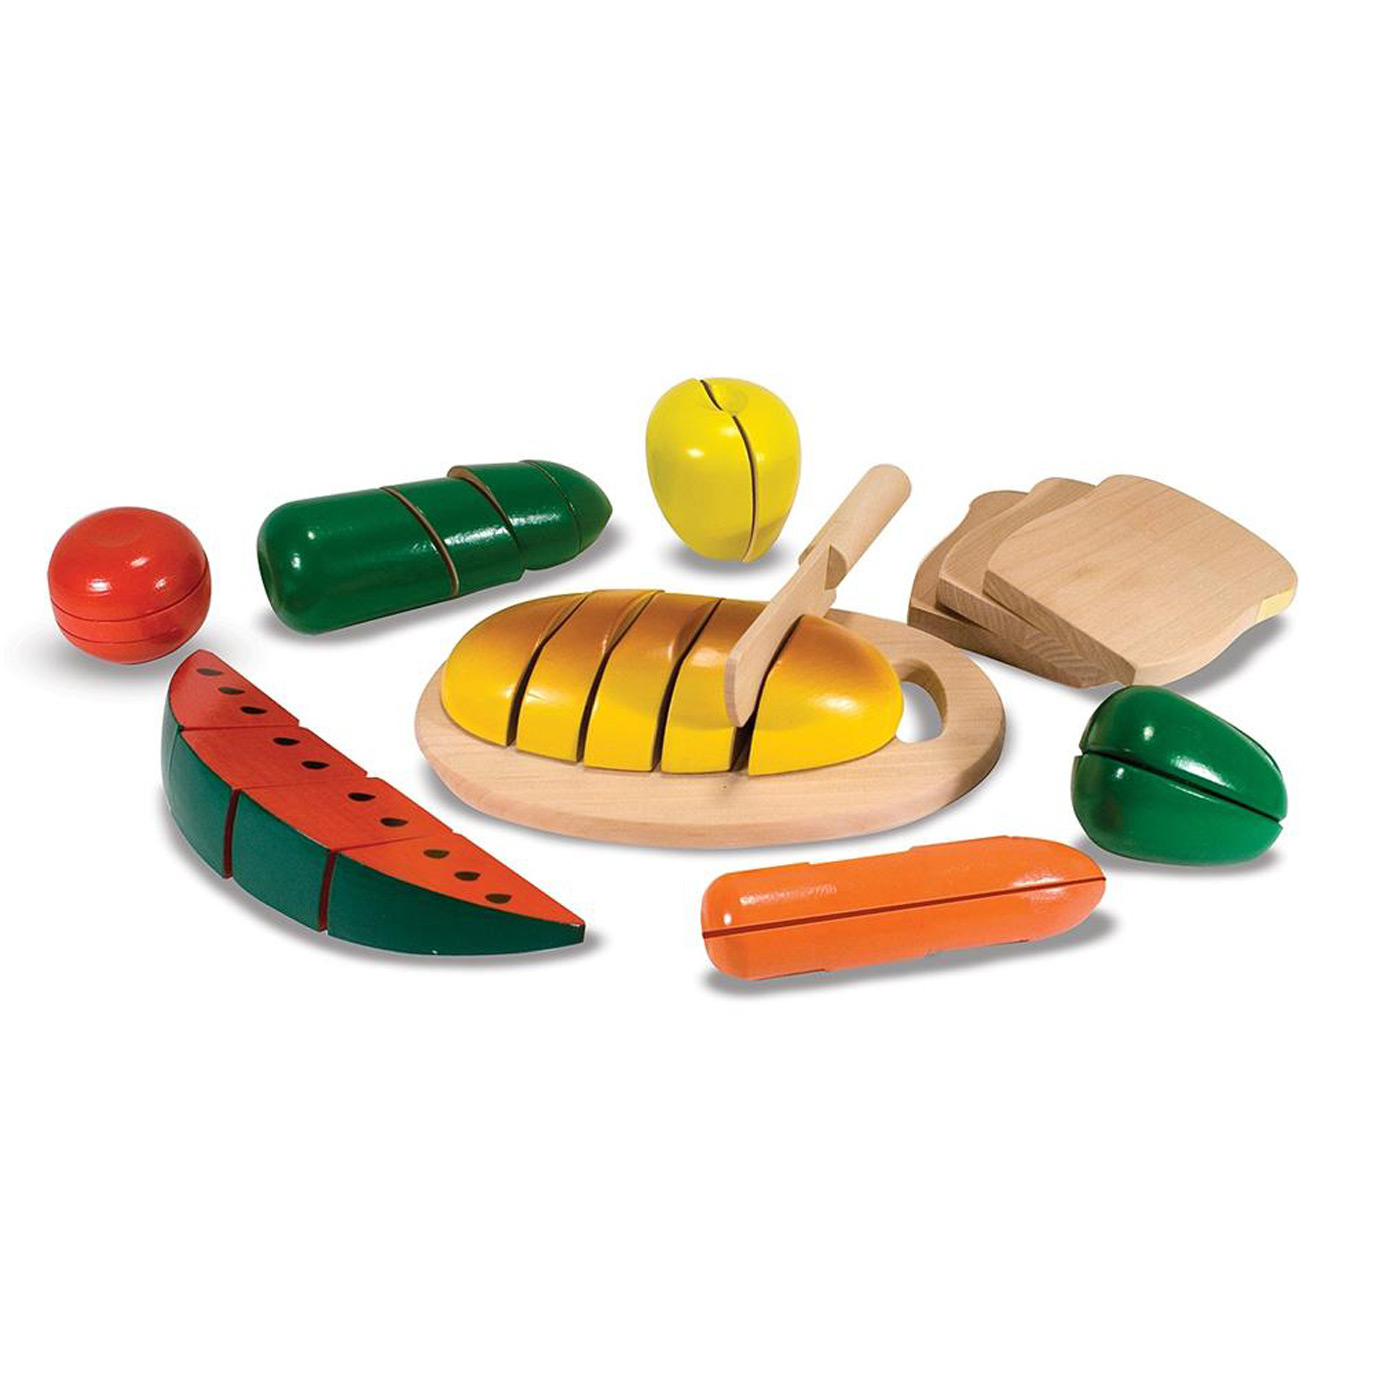 "CUTTING FOOD BOX – WOODEN PLAY FOOD (Melissa & Doug, R340)  This set contains 25 hand-crafted wooden pieces, making up 8 'whole' pieces of wooden food, a cutting board and a wooden knife. Cutting the food makes a satisfying ""crunch"" - and a playful introduction to concepts of ""whole"", ""part"", and fractions. This activity promotes bilateral skills (using two hands together) and introduces the self-care concept of eating and cutting up one's own food.  Suitable for ages 3 years and older."